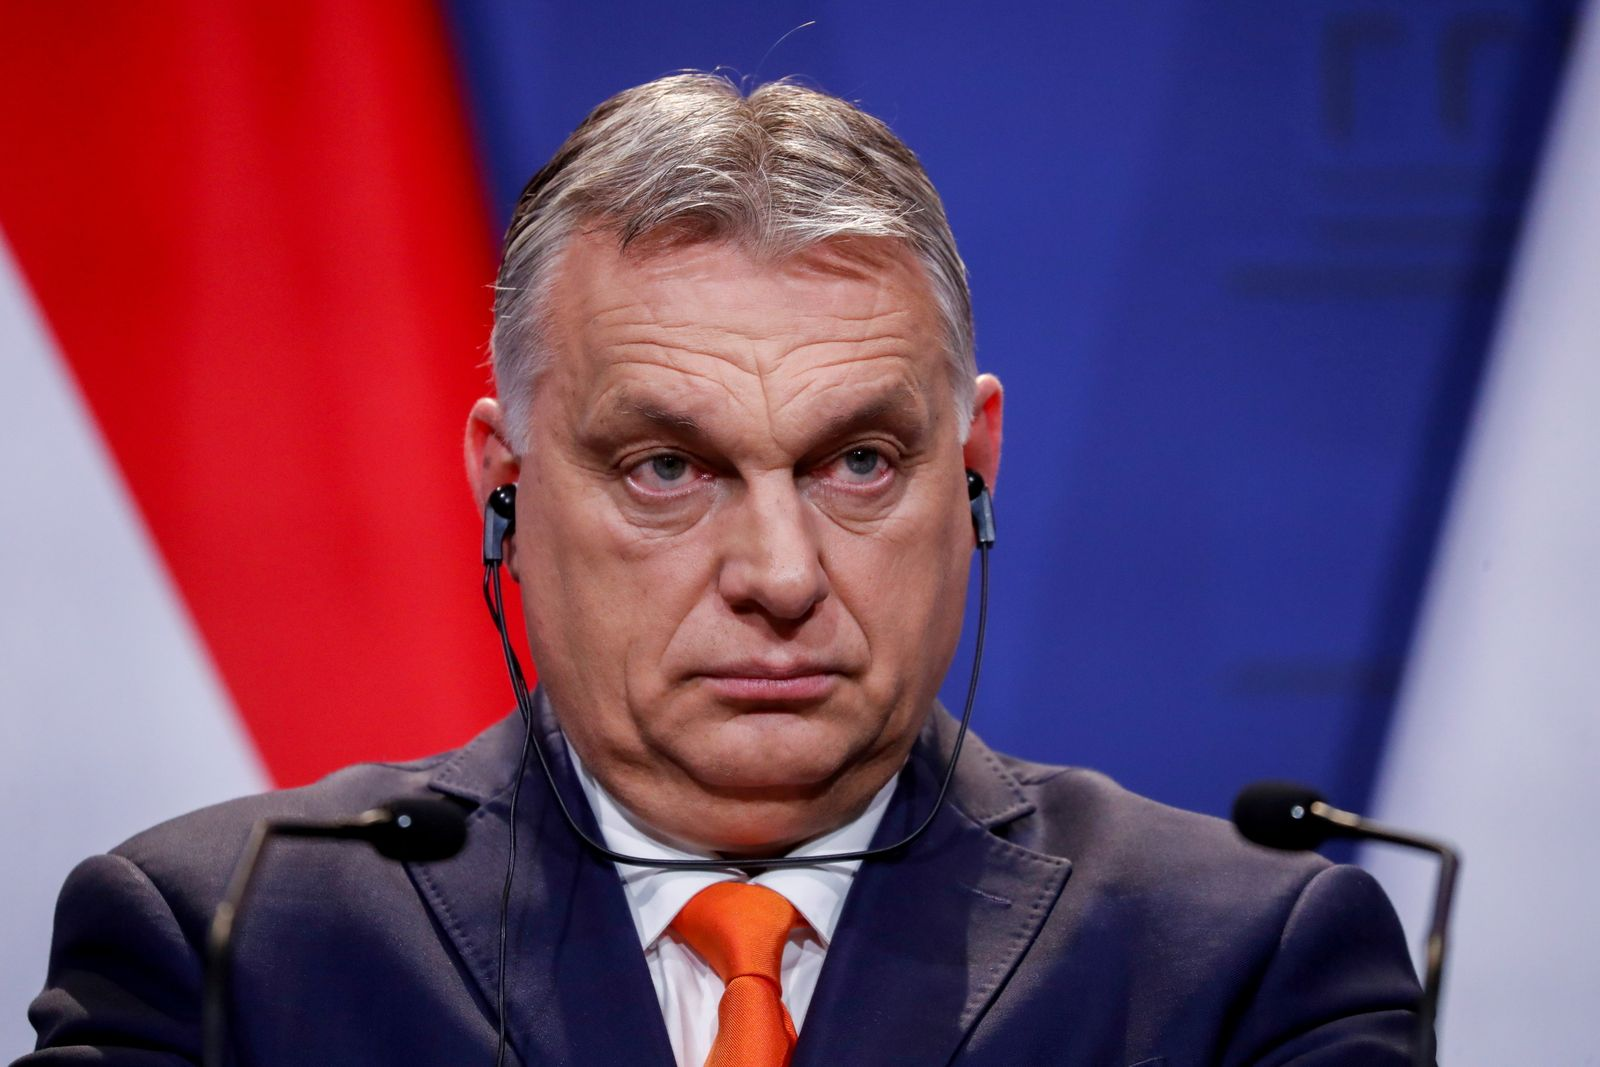 FILE PHOTO: Hungary's PM Orban in Budapest